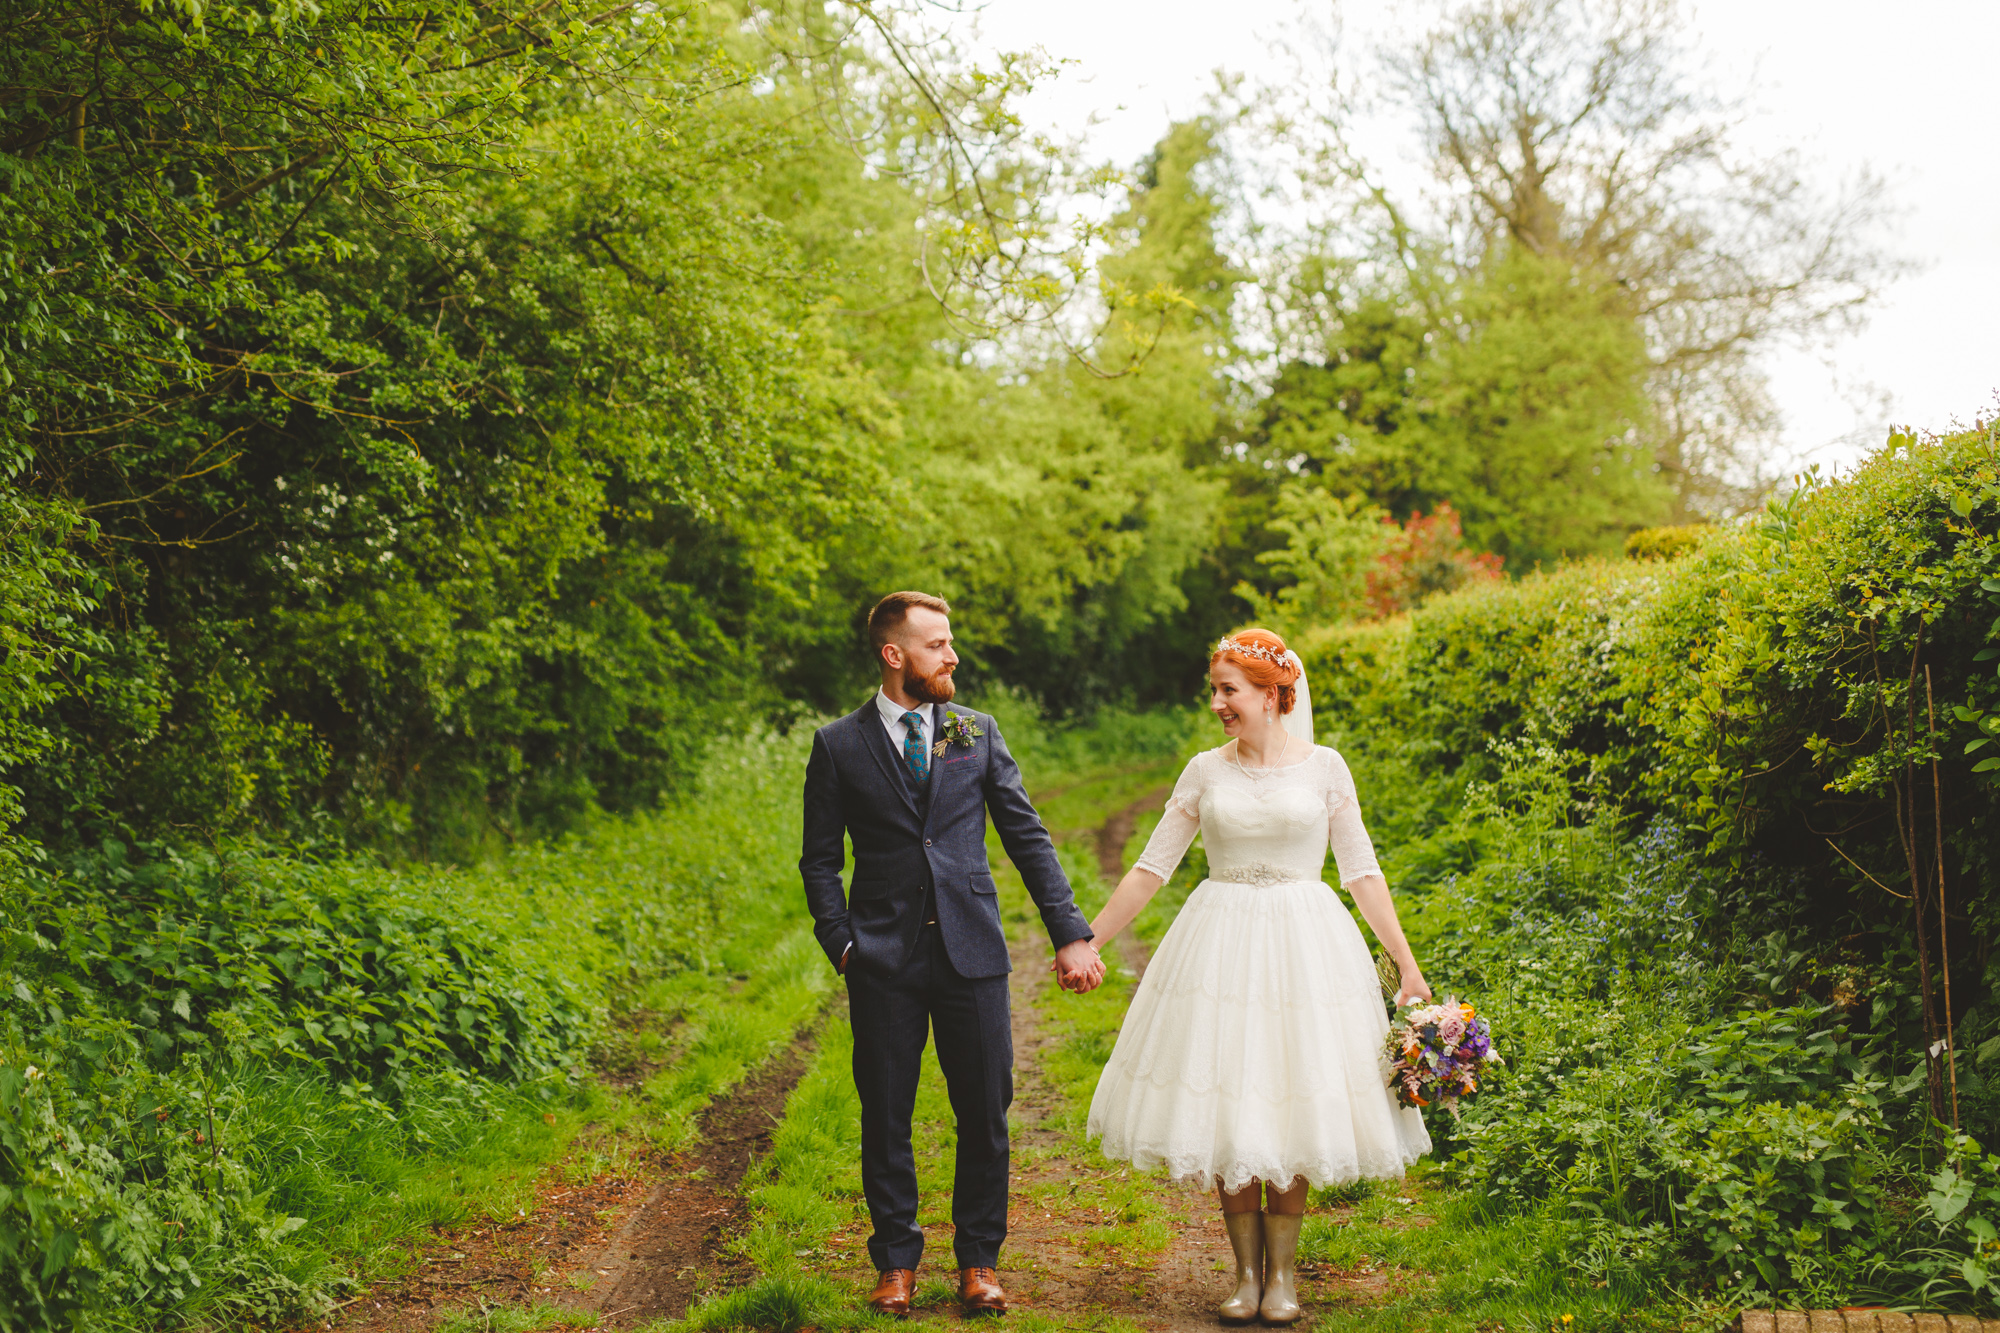 creative-informal-wedding-photographer-uk-camera-hannah-17.jpg